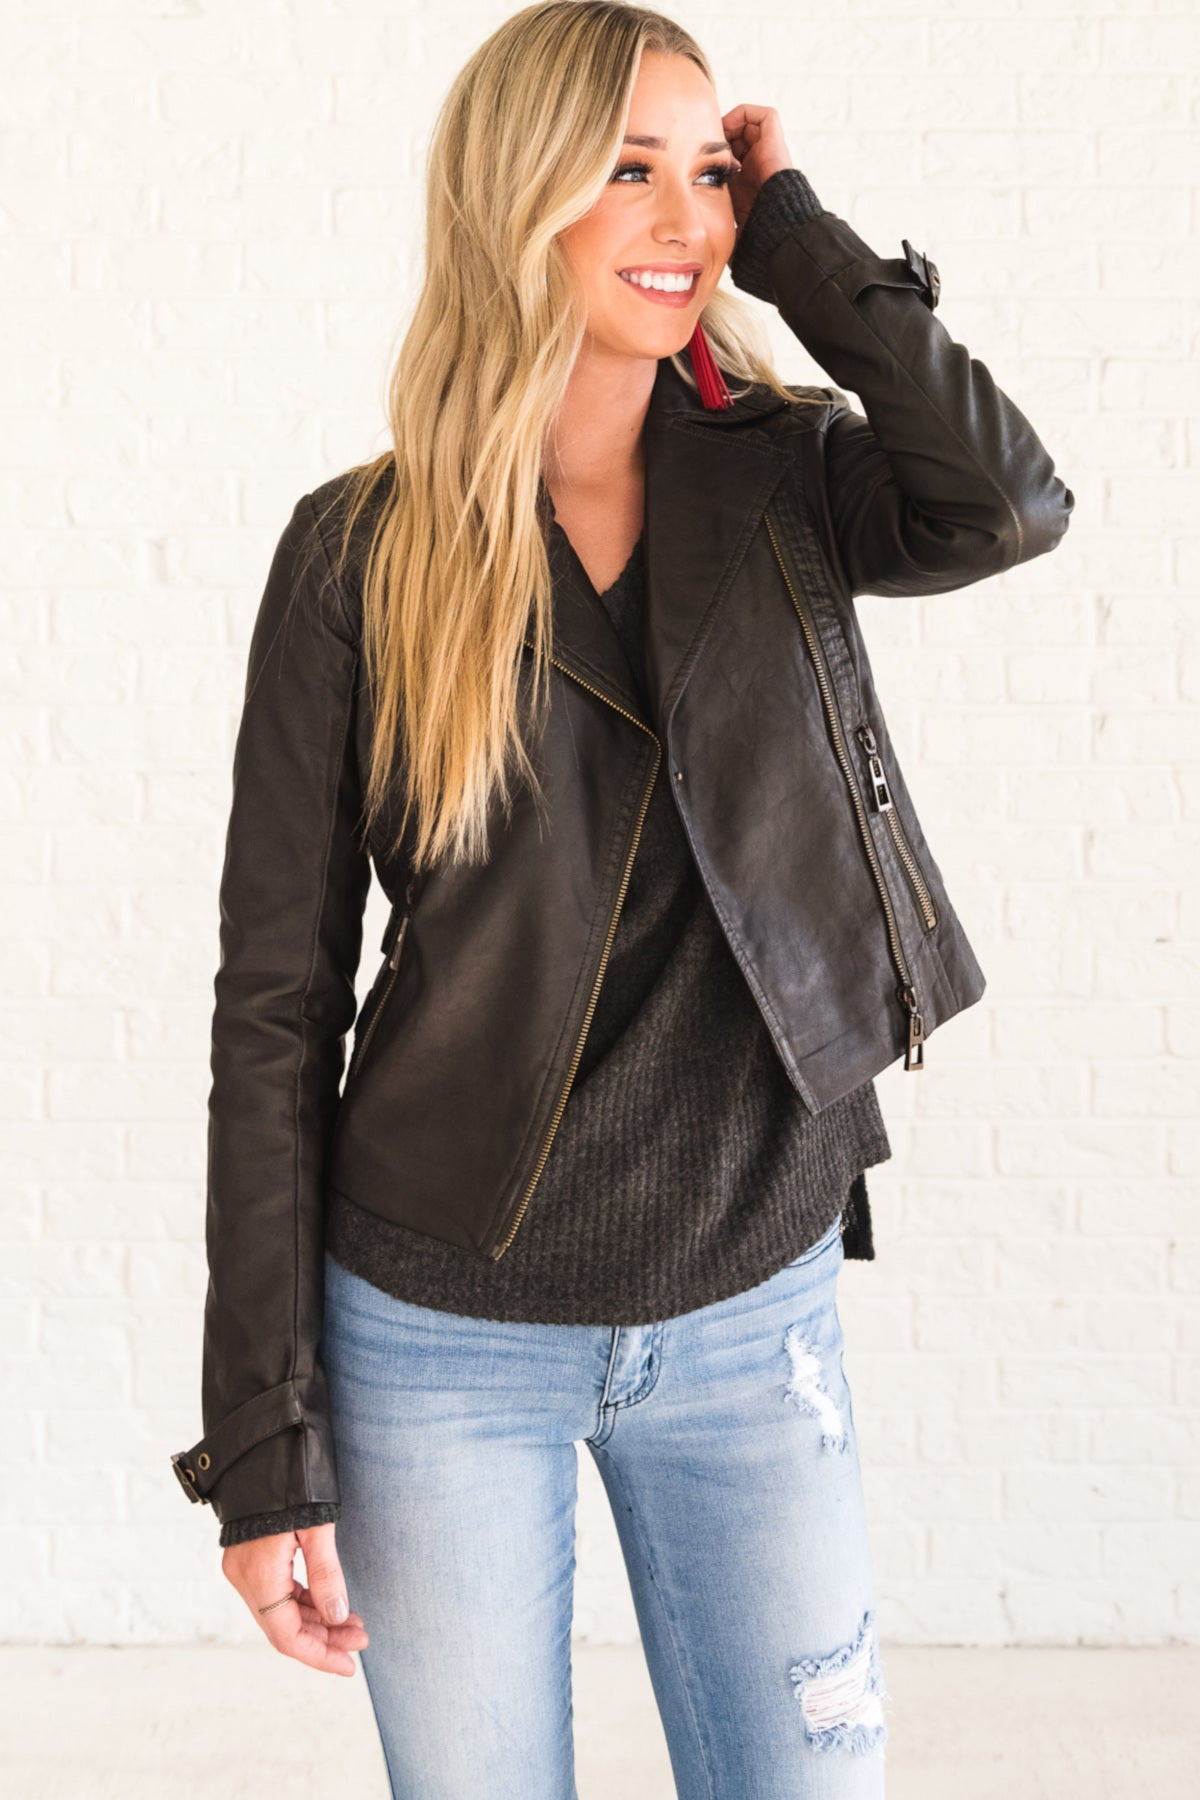 Faded Black Charcoal Gray Blanc Noir Faux Leather Jacket with Cropped Length